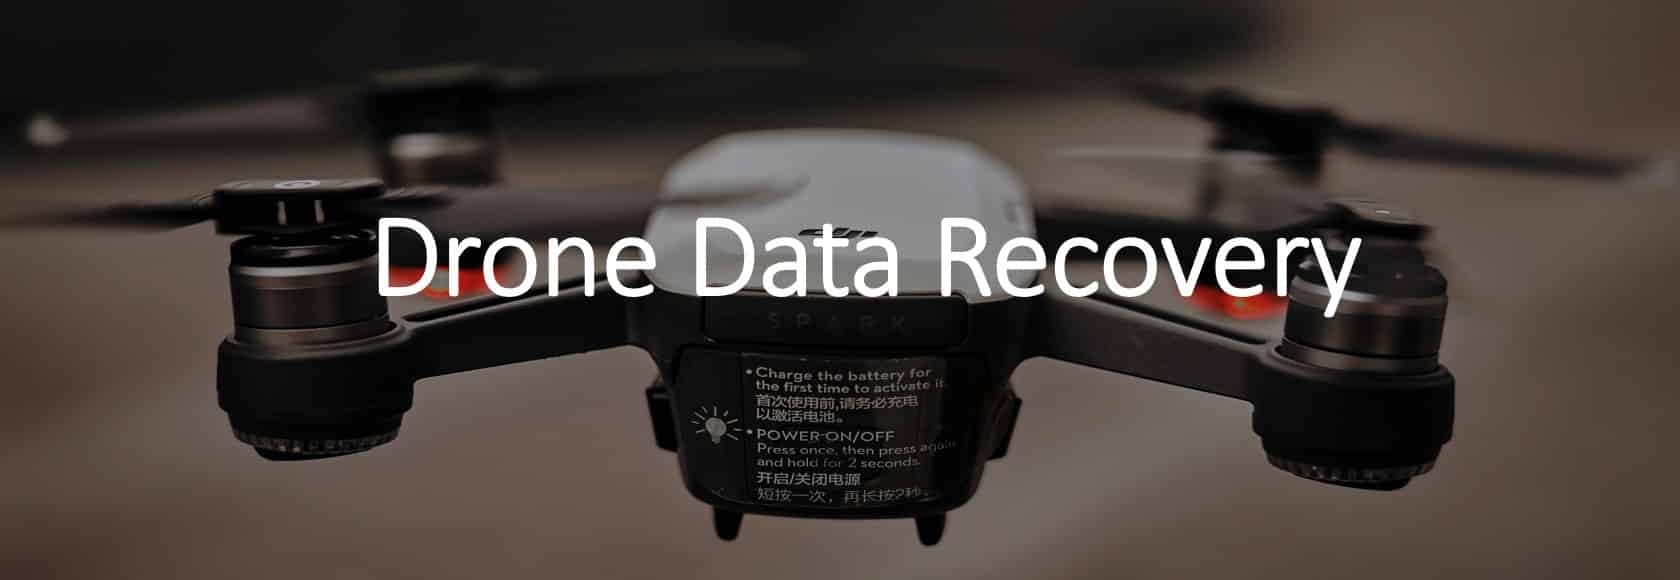 Drone Data Recovery